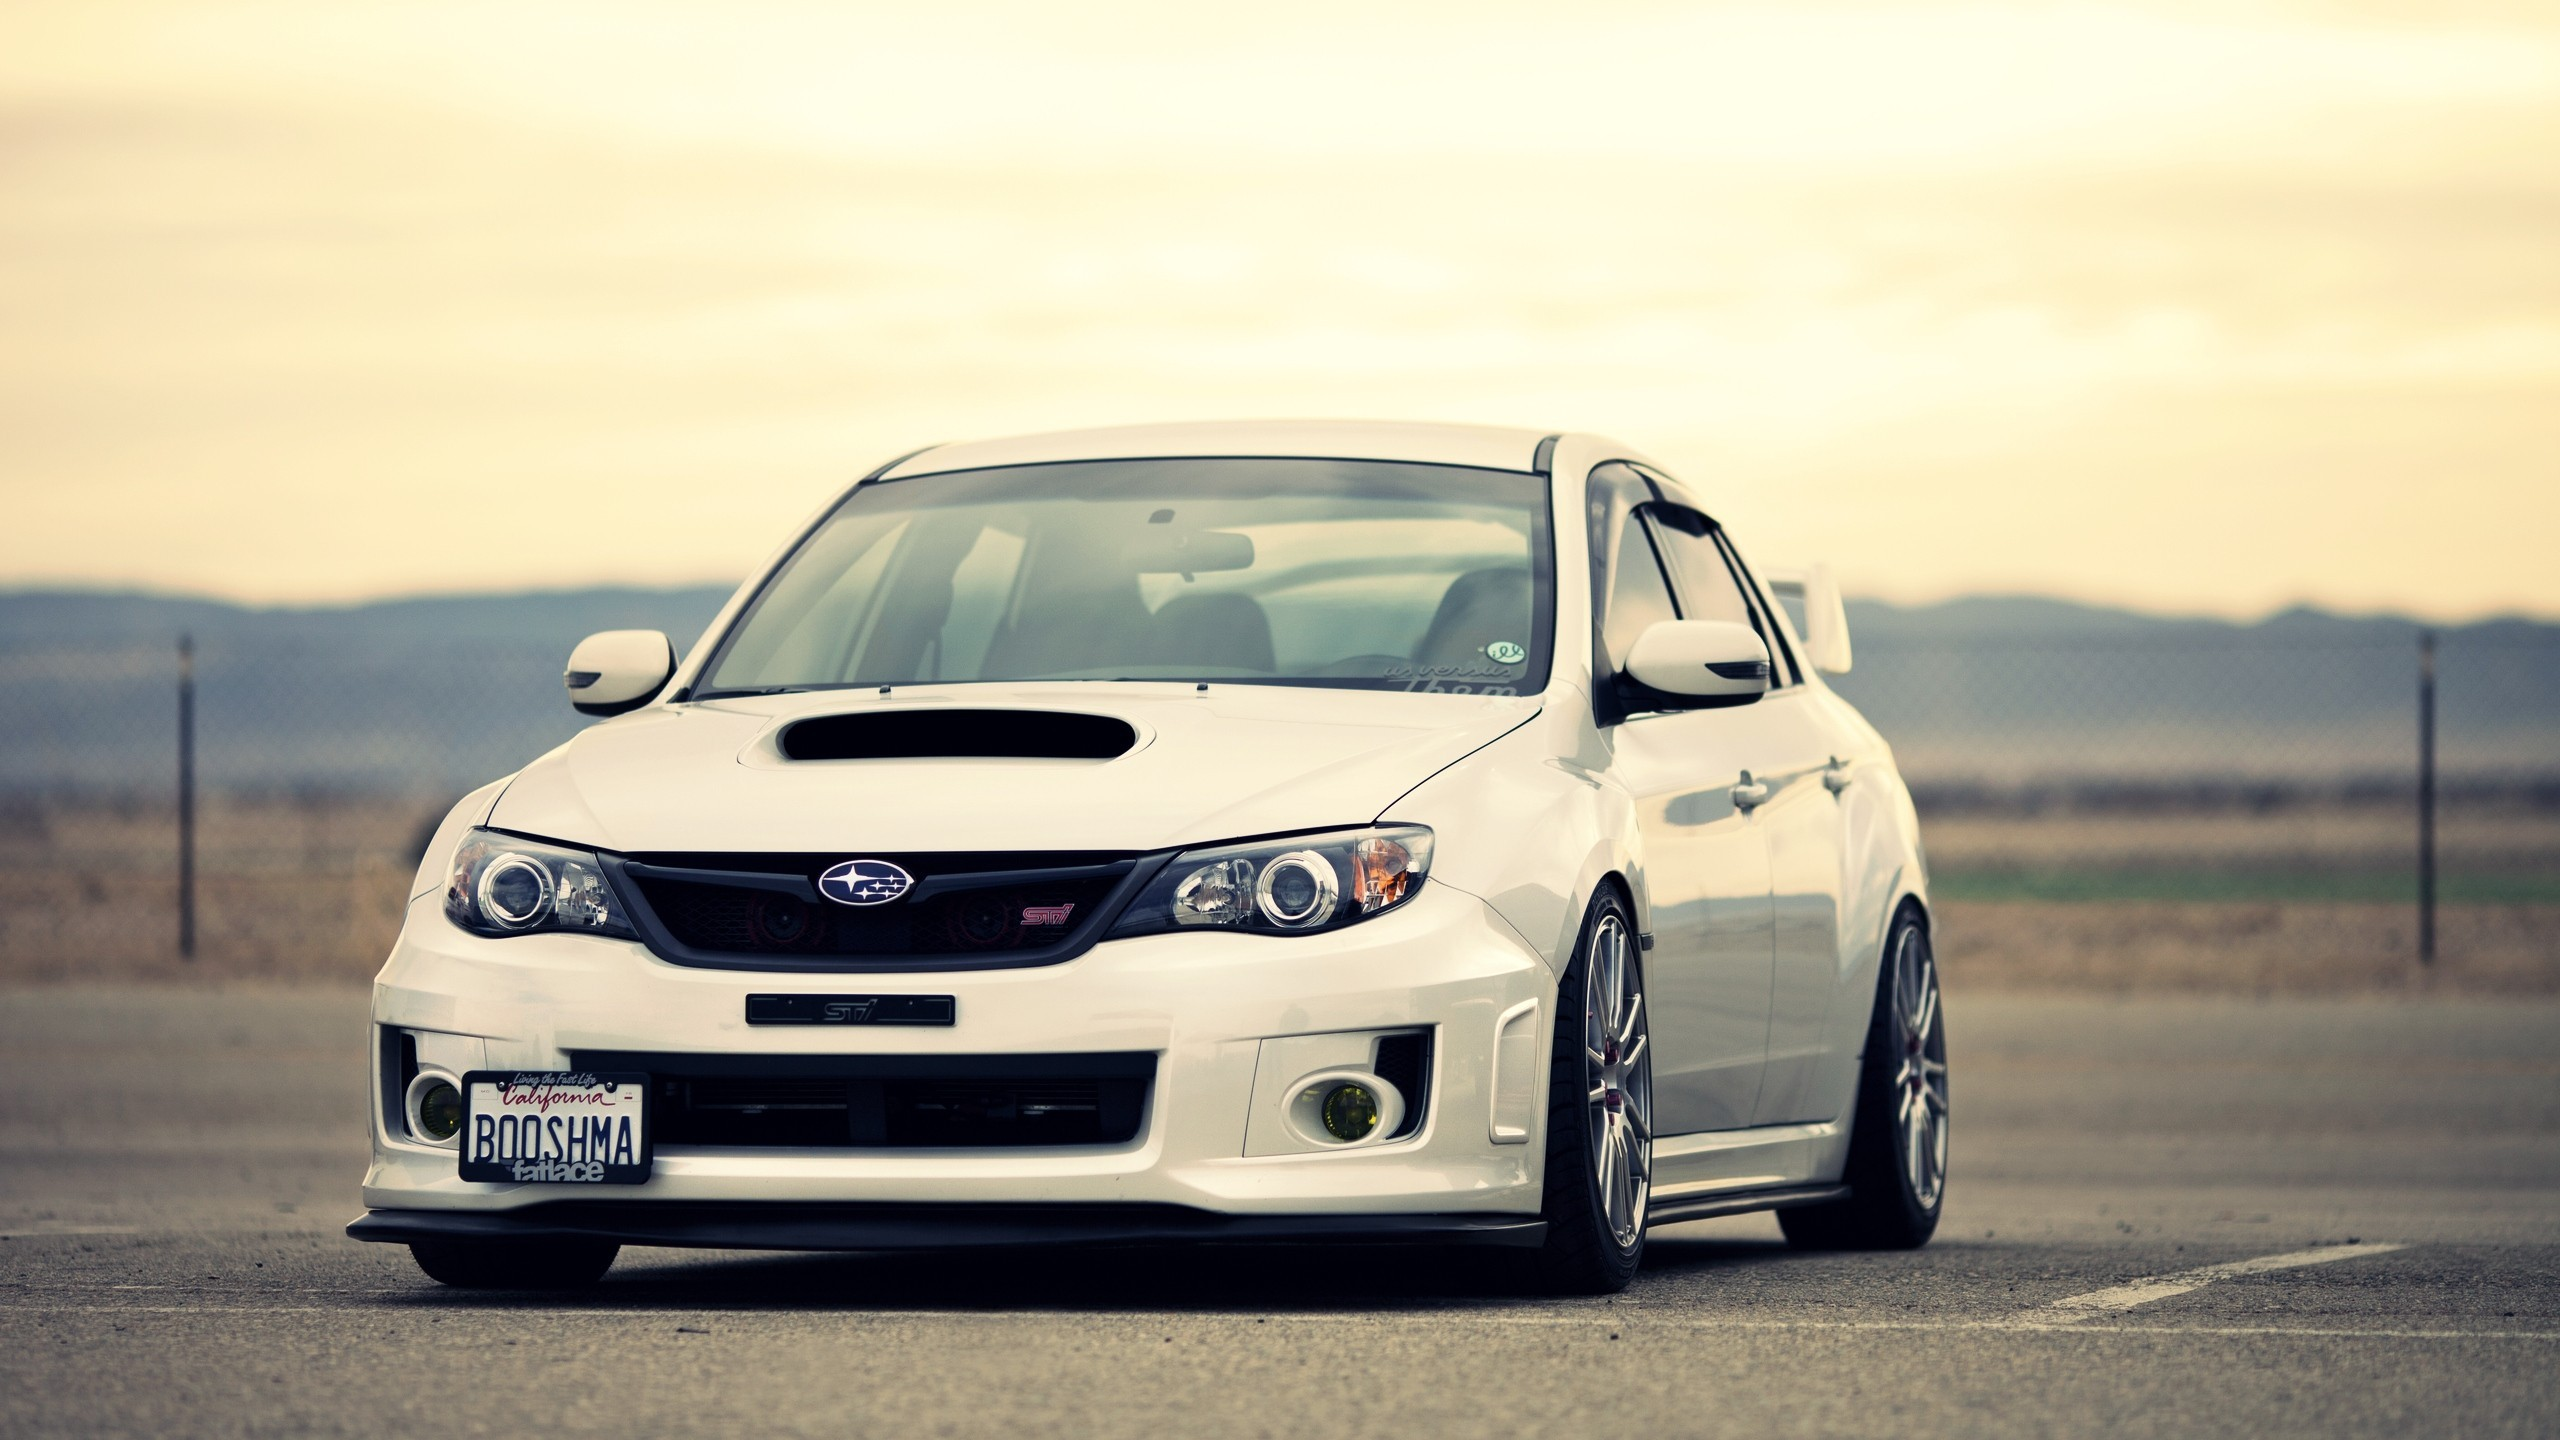 cars subaru impreza wrx sti wallpaper. Black Bedroom Furniture Sets. Home Design Ideas